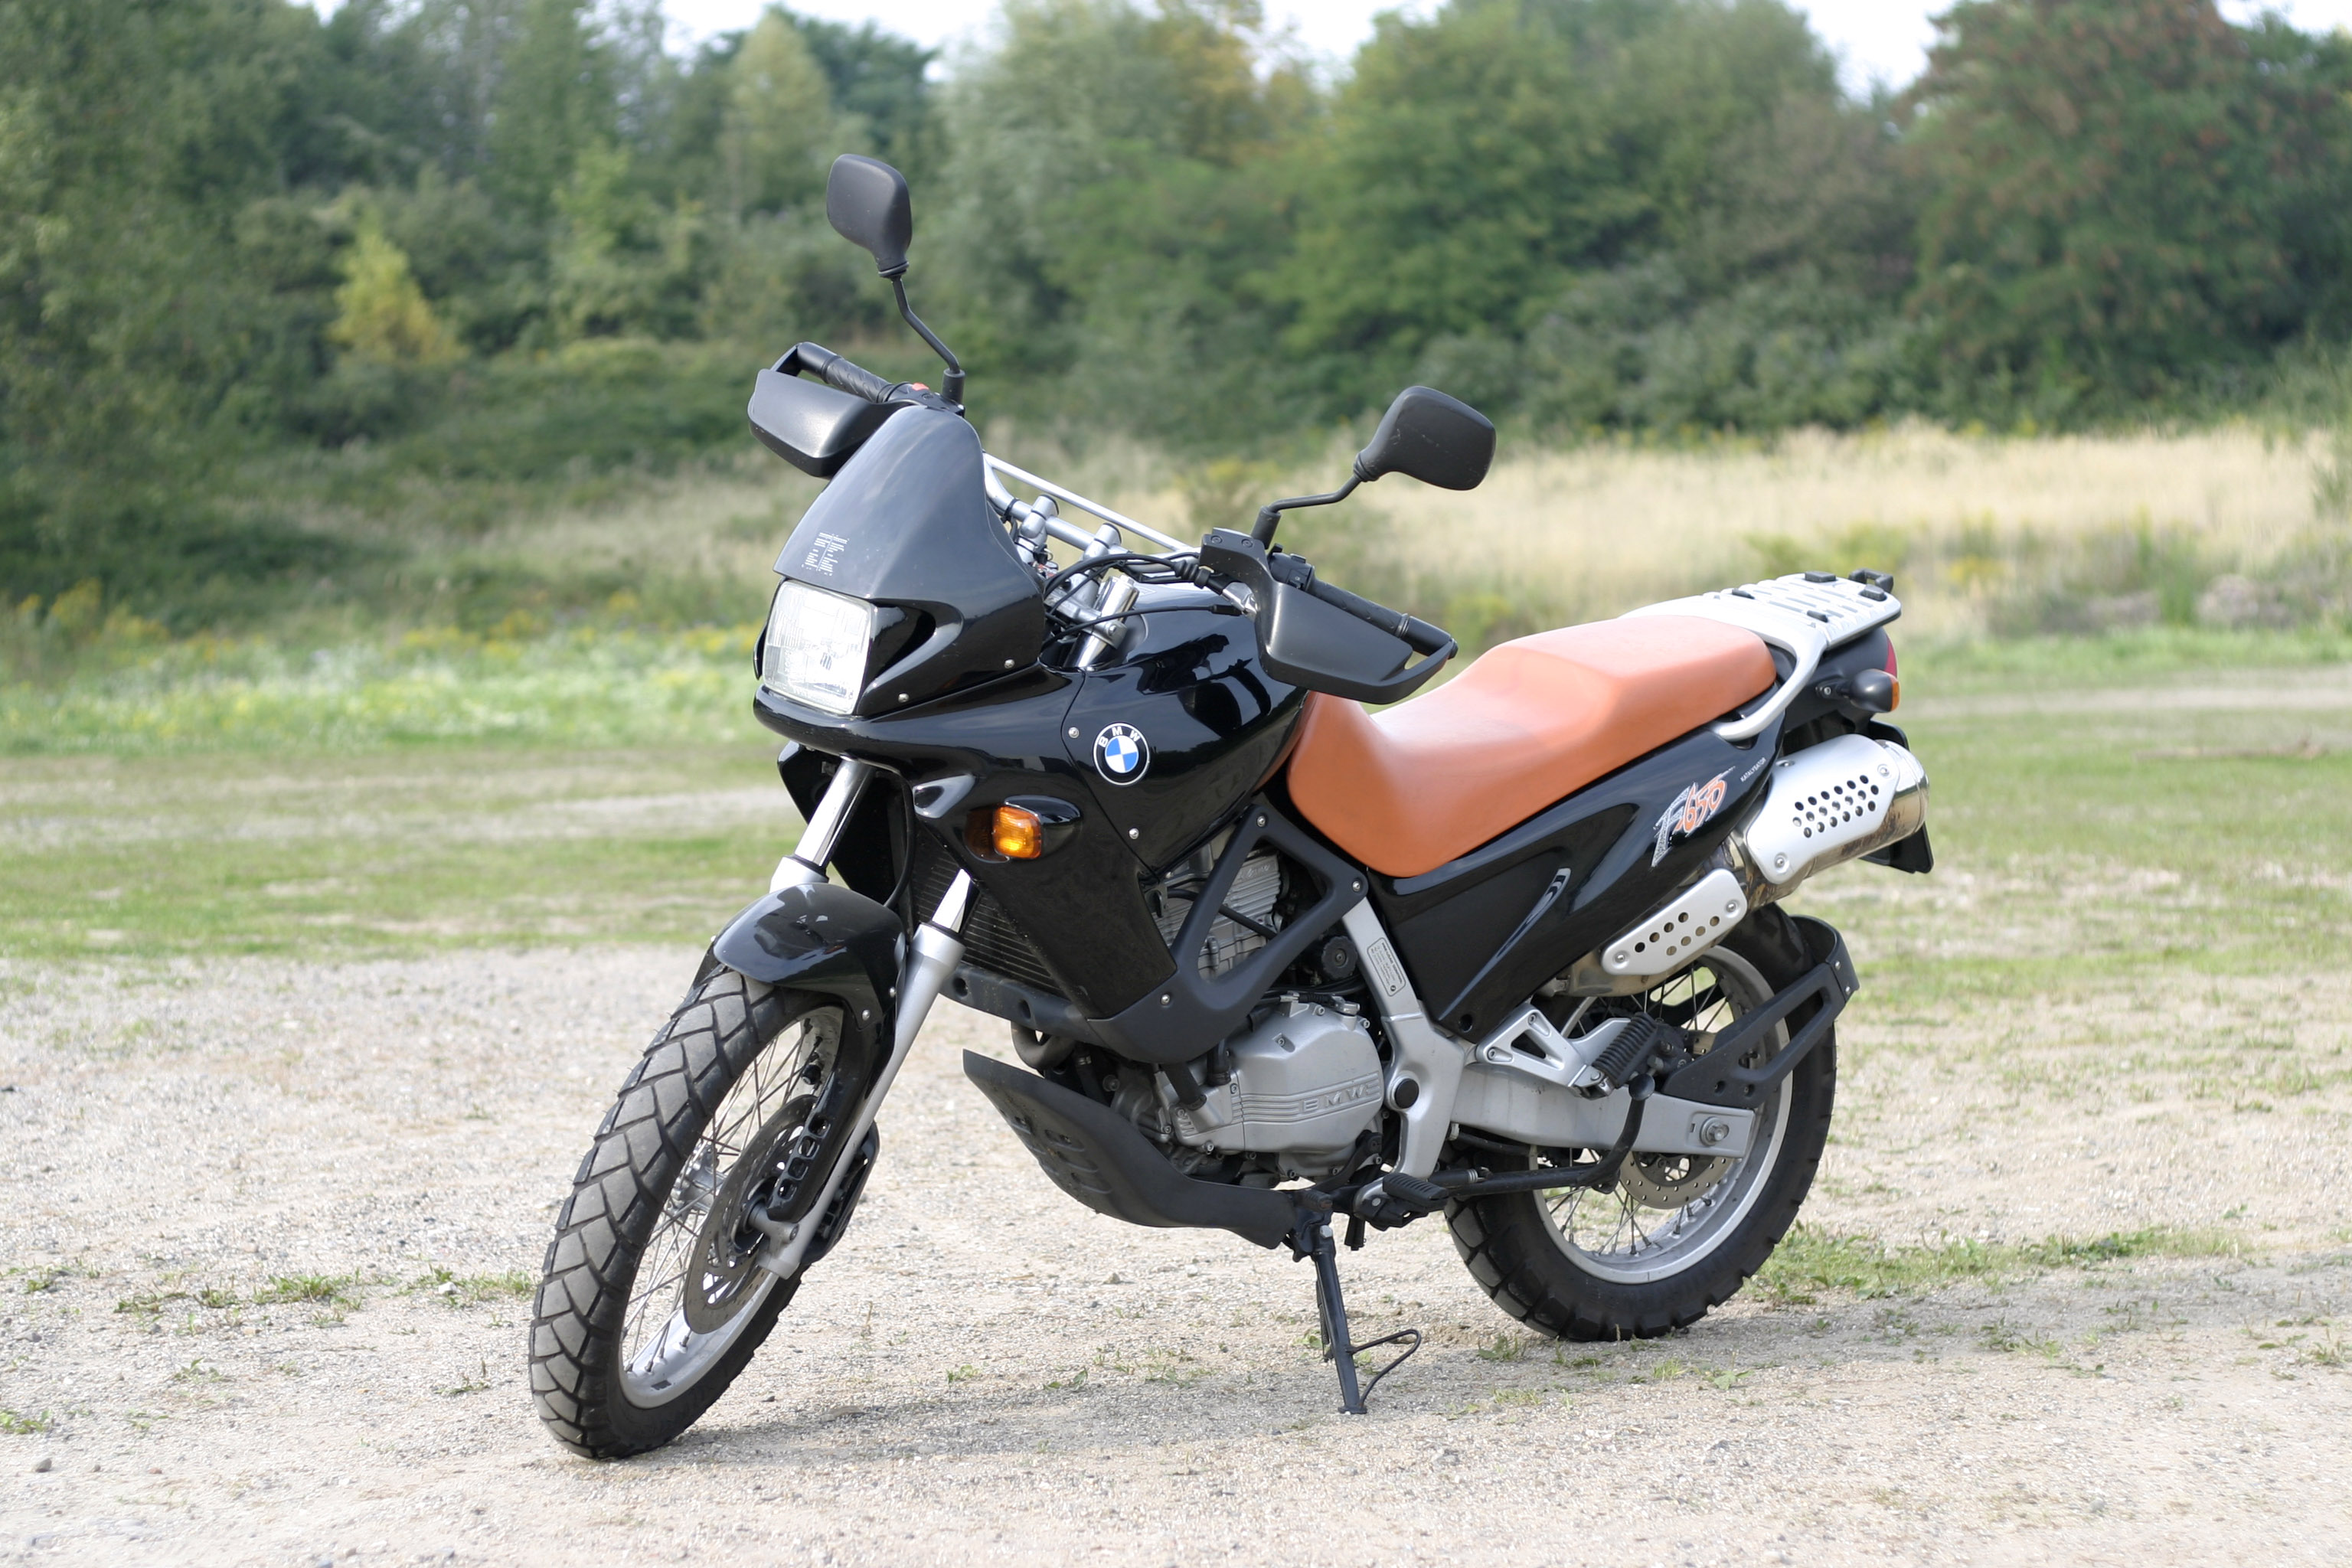 BMW F650GS 2006 images #9818